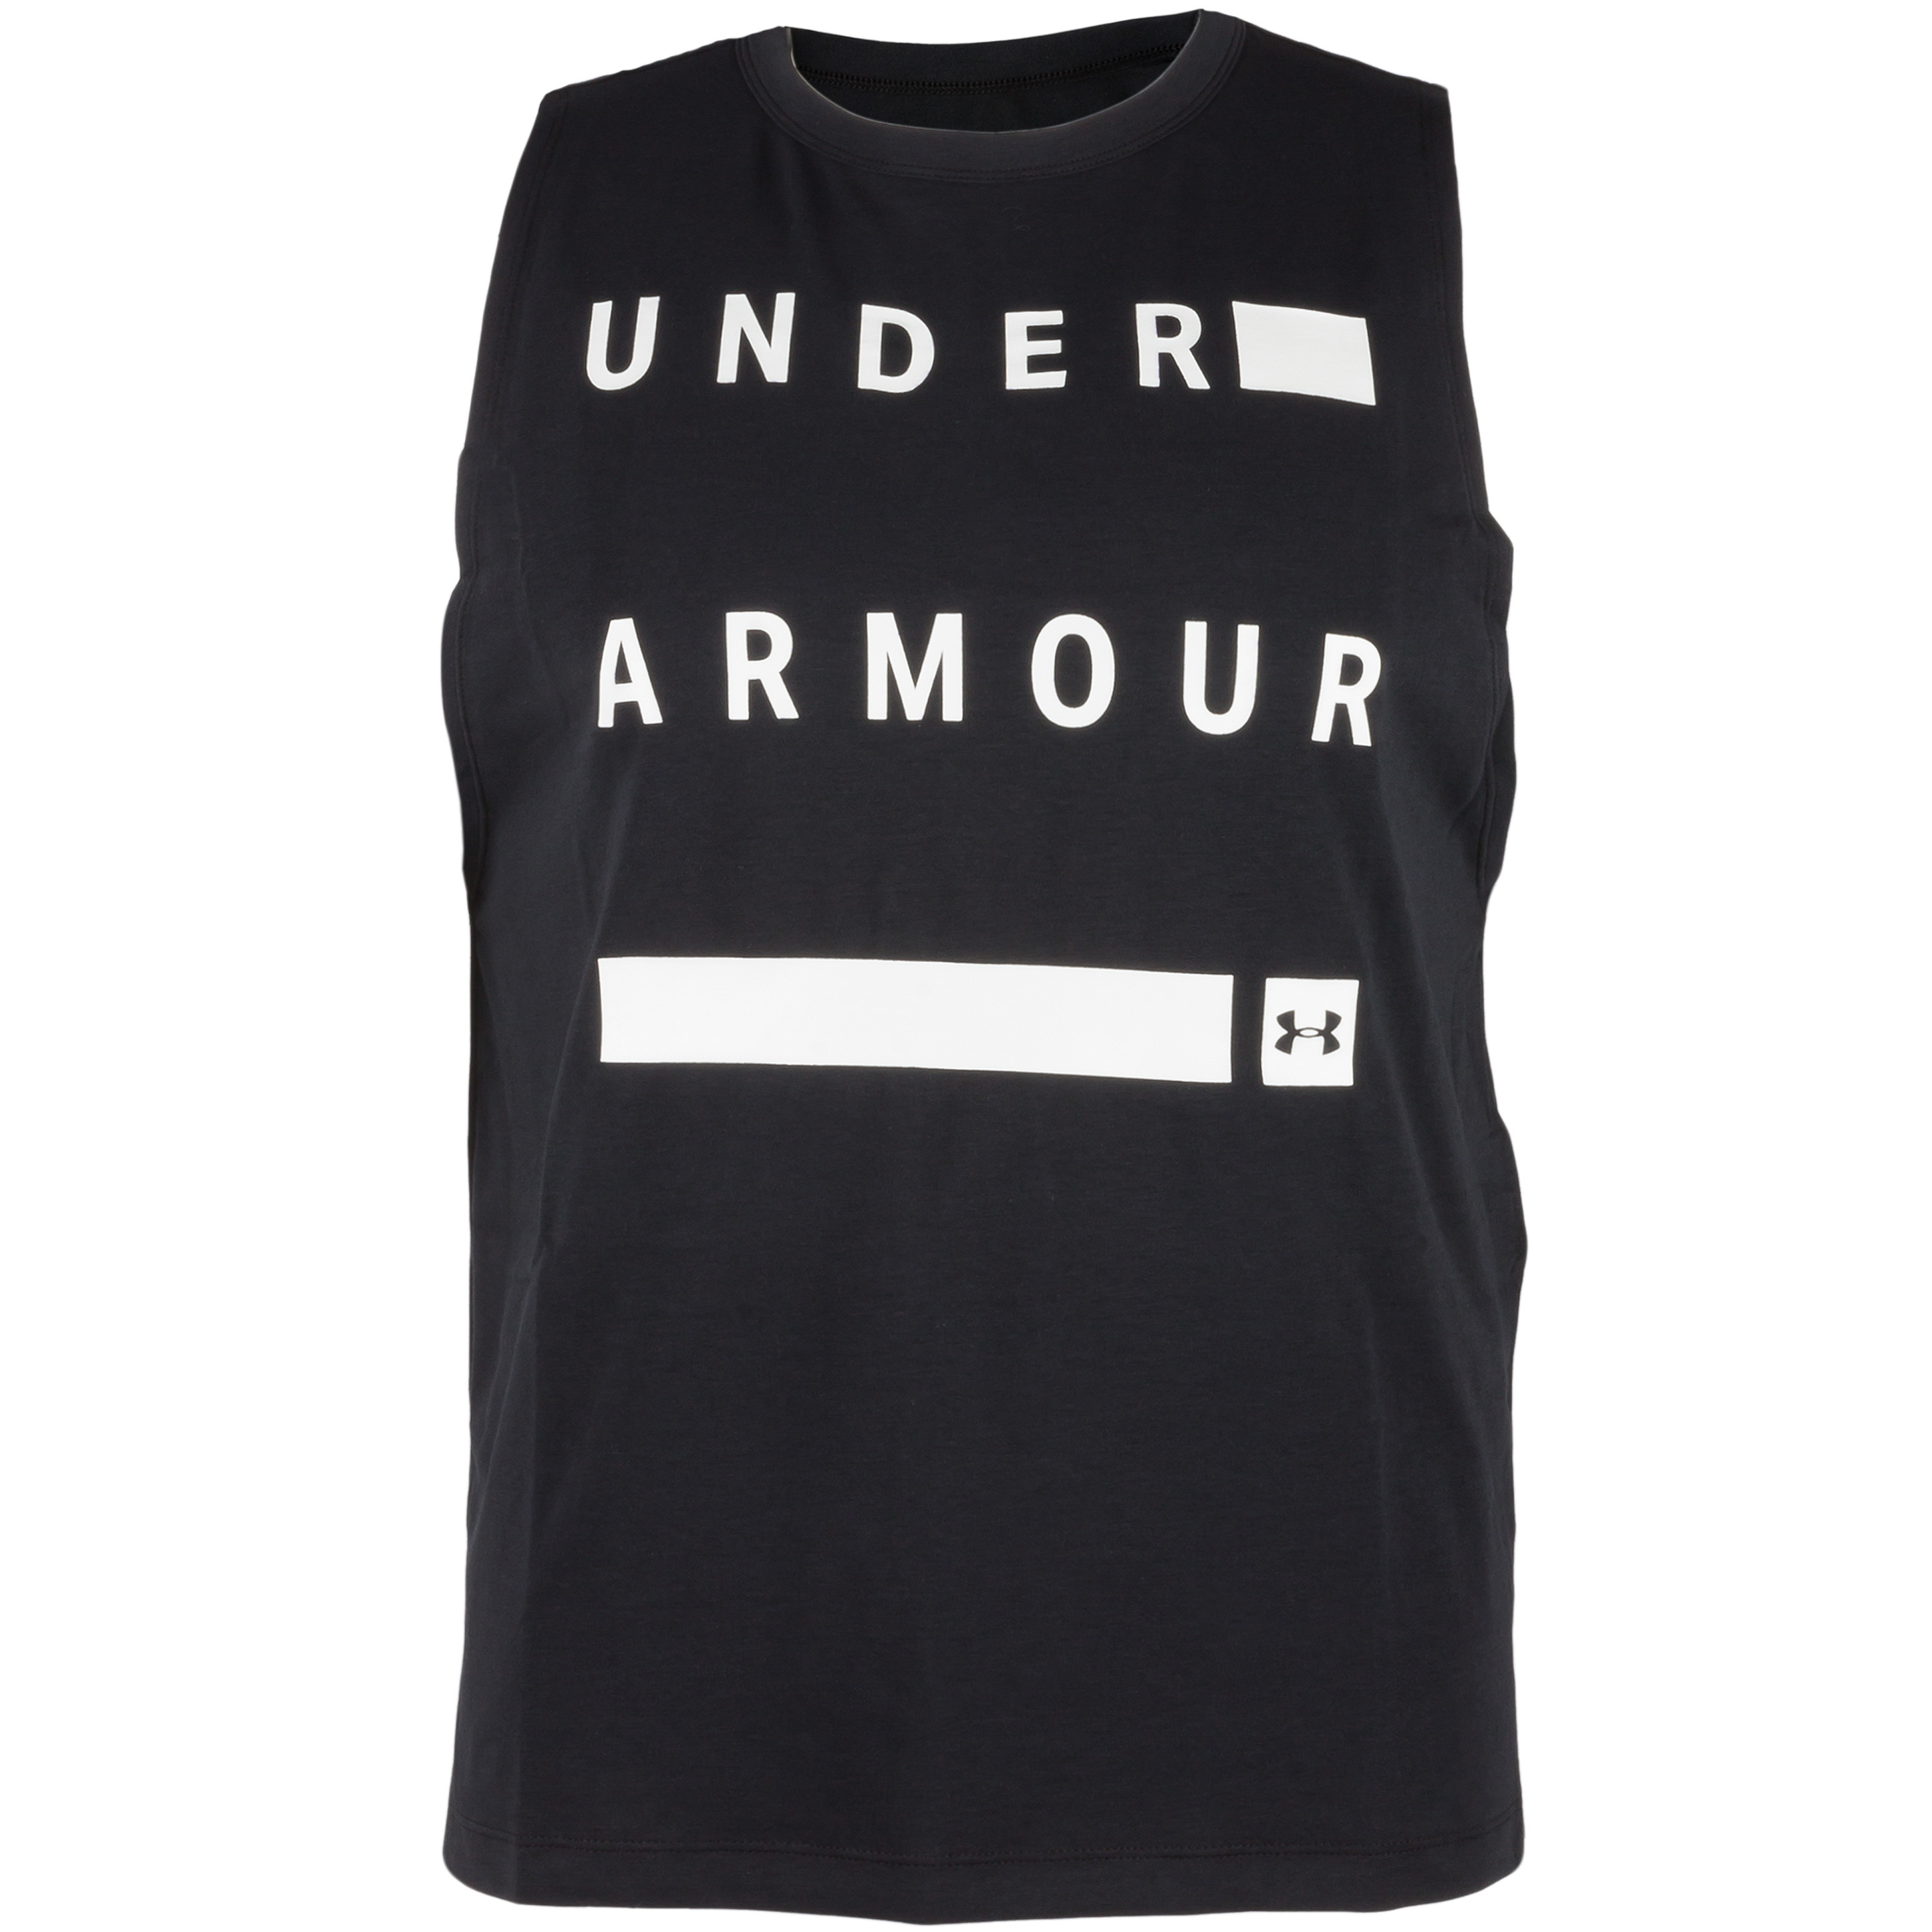 Under Armour Débardeur Femmes Muscle Linear Wordmark noir